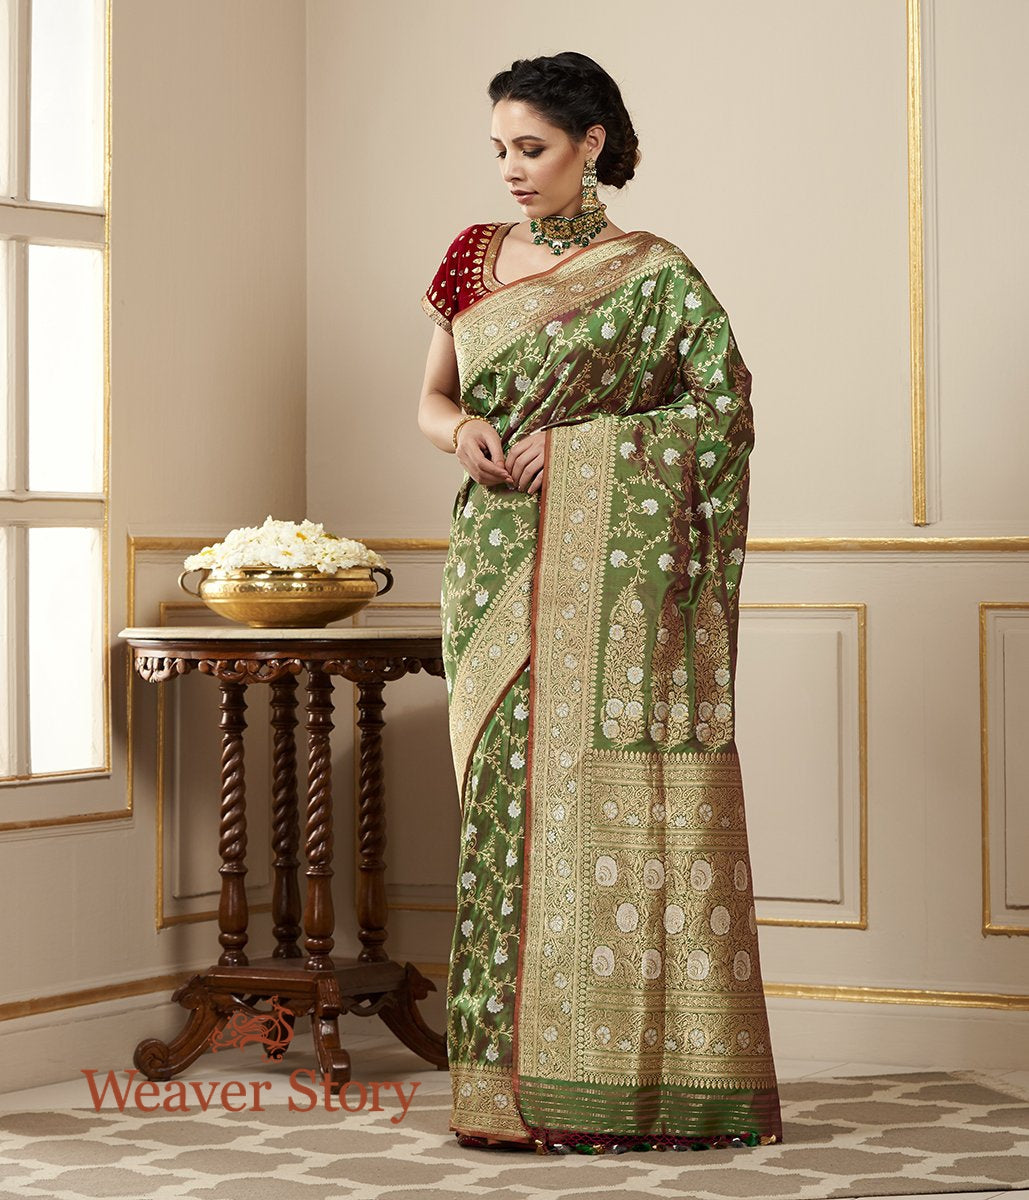 Handwoven Green and Red Kadhwa Banarasi Jangla Saree with Sona Rupa Zari